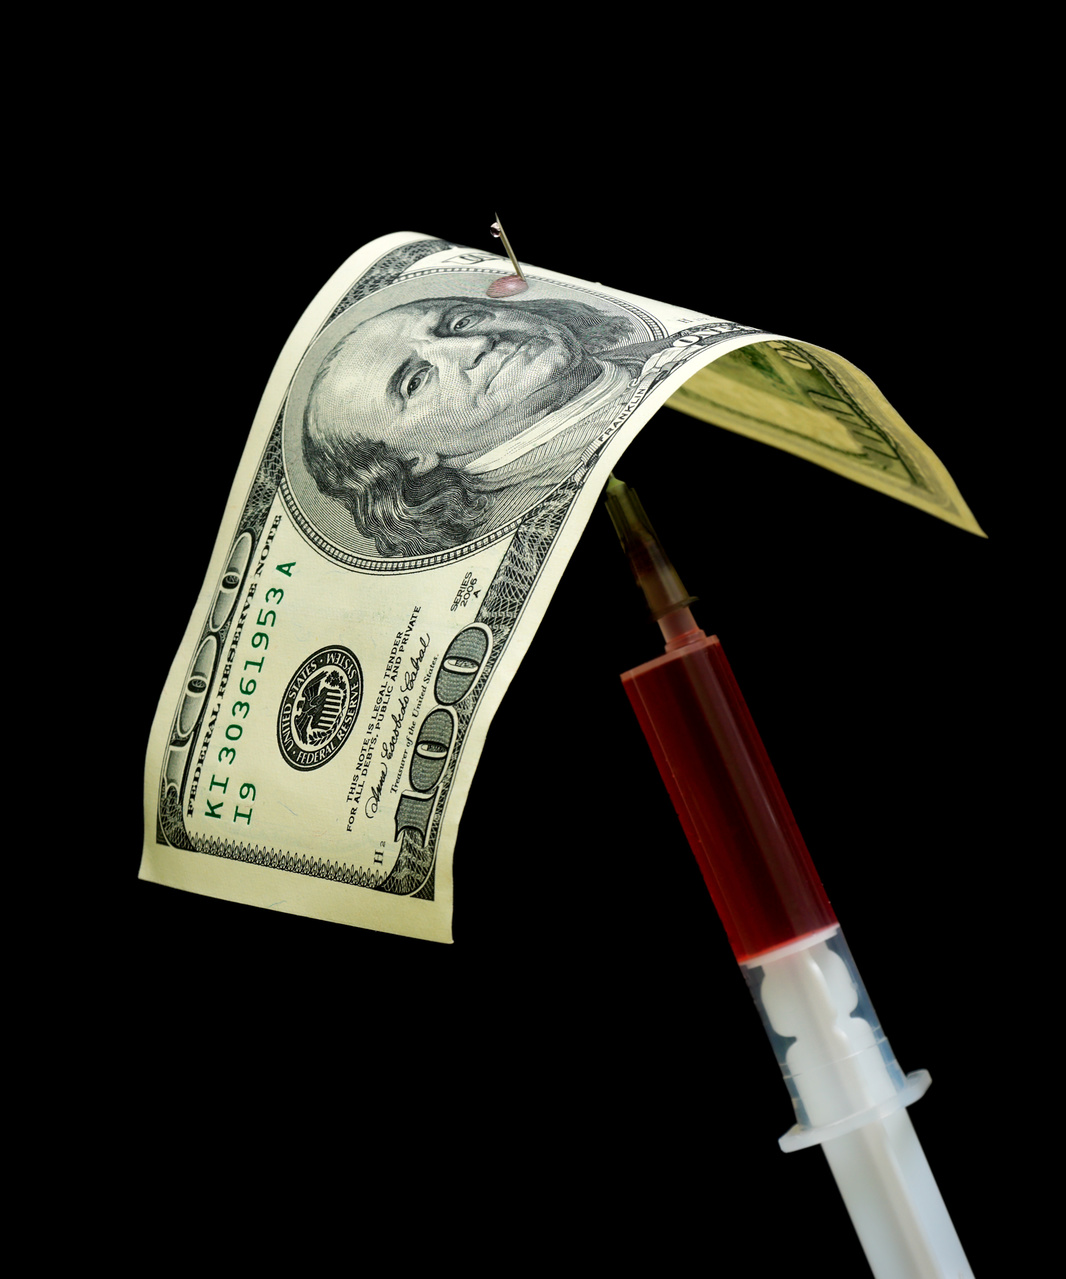 Change Dosing Regimens To Lower Drug Costs? It's Possible, Researchers Say